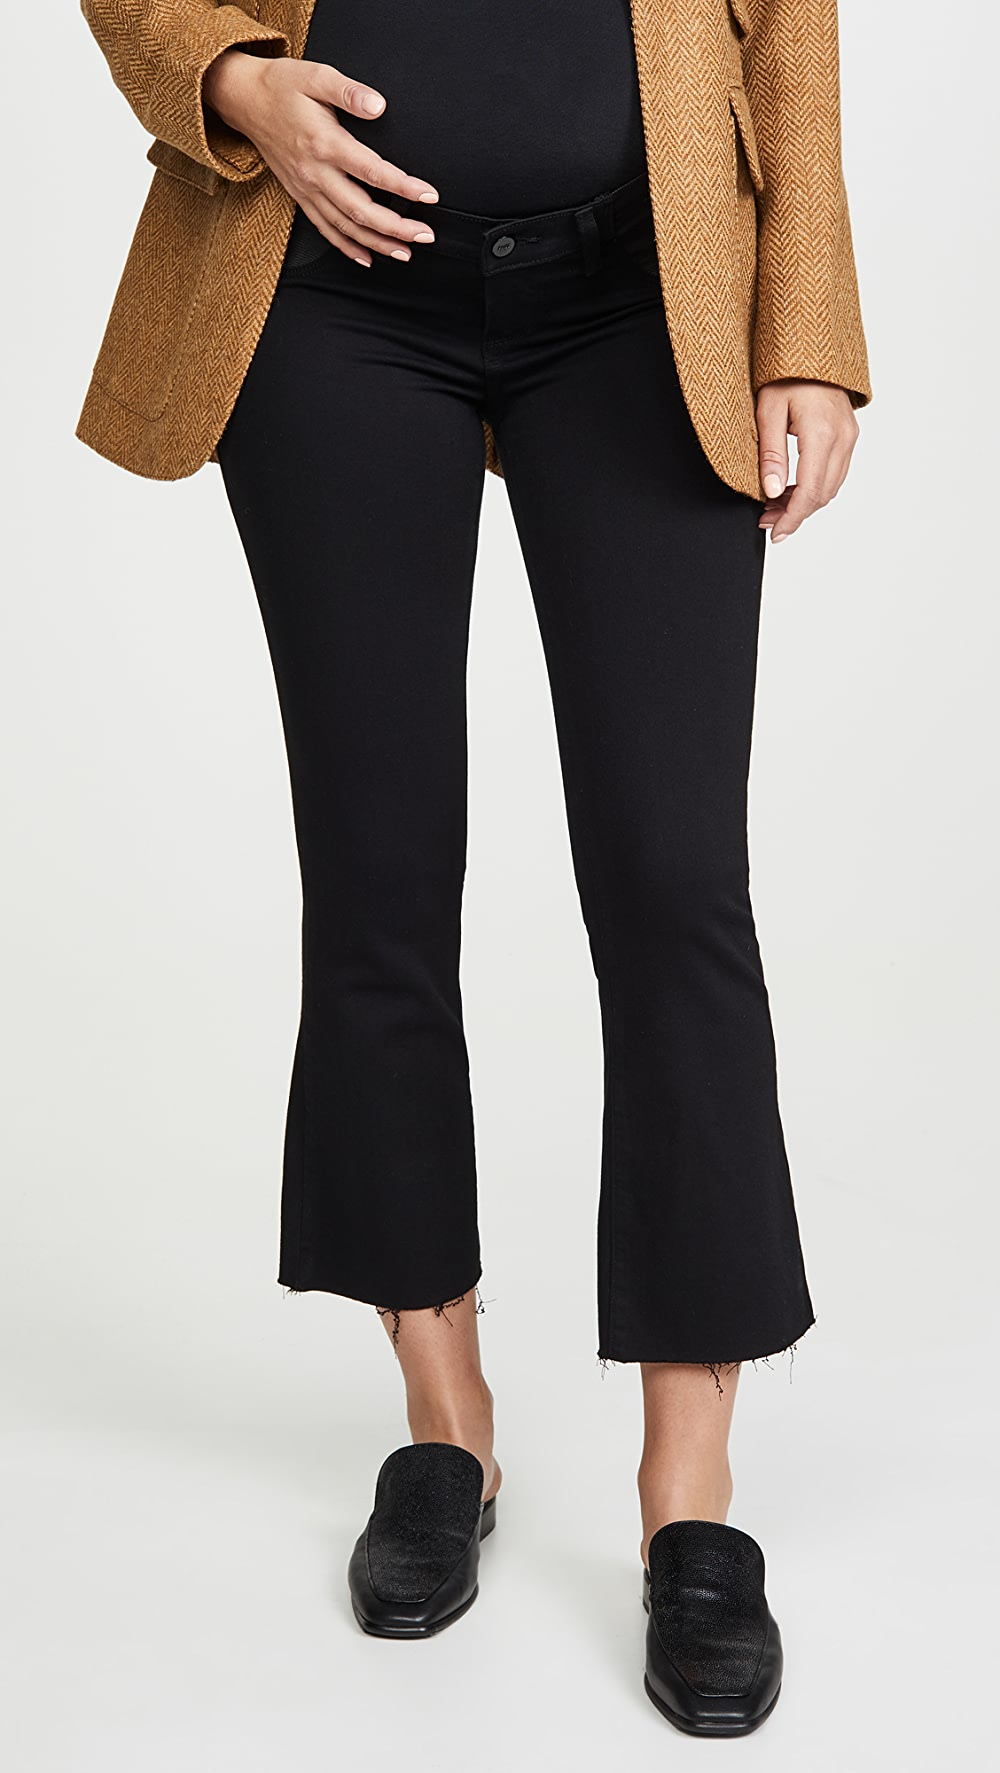 Generous Paige - Colette Maternity Crop Flare Jeans Factories And Mines